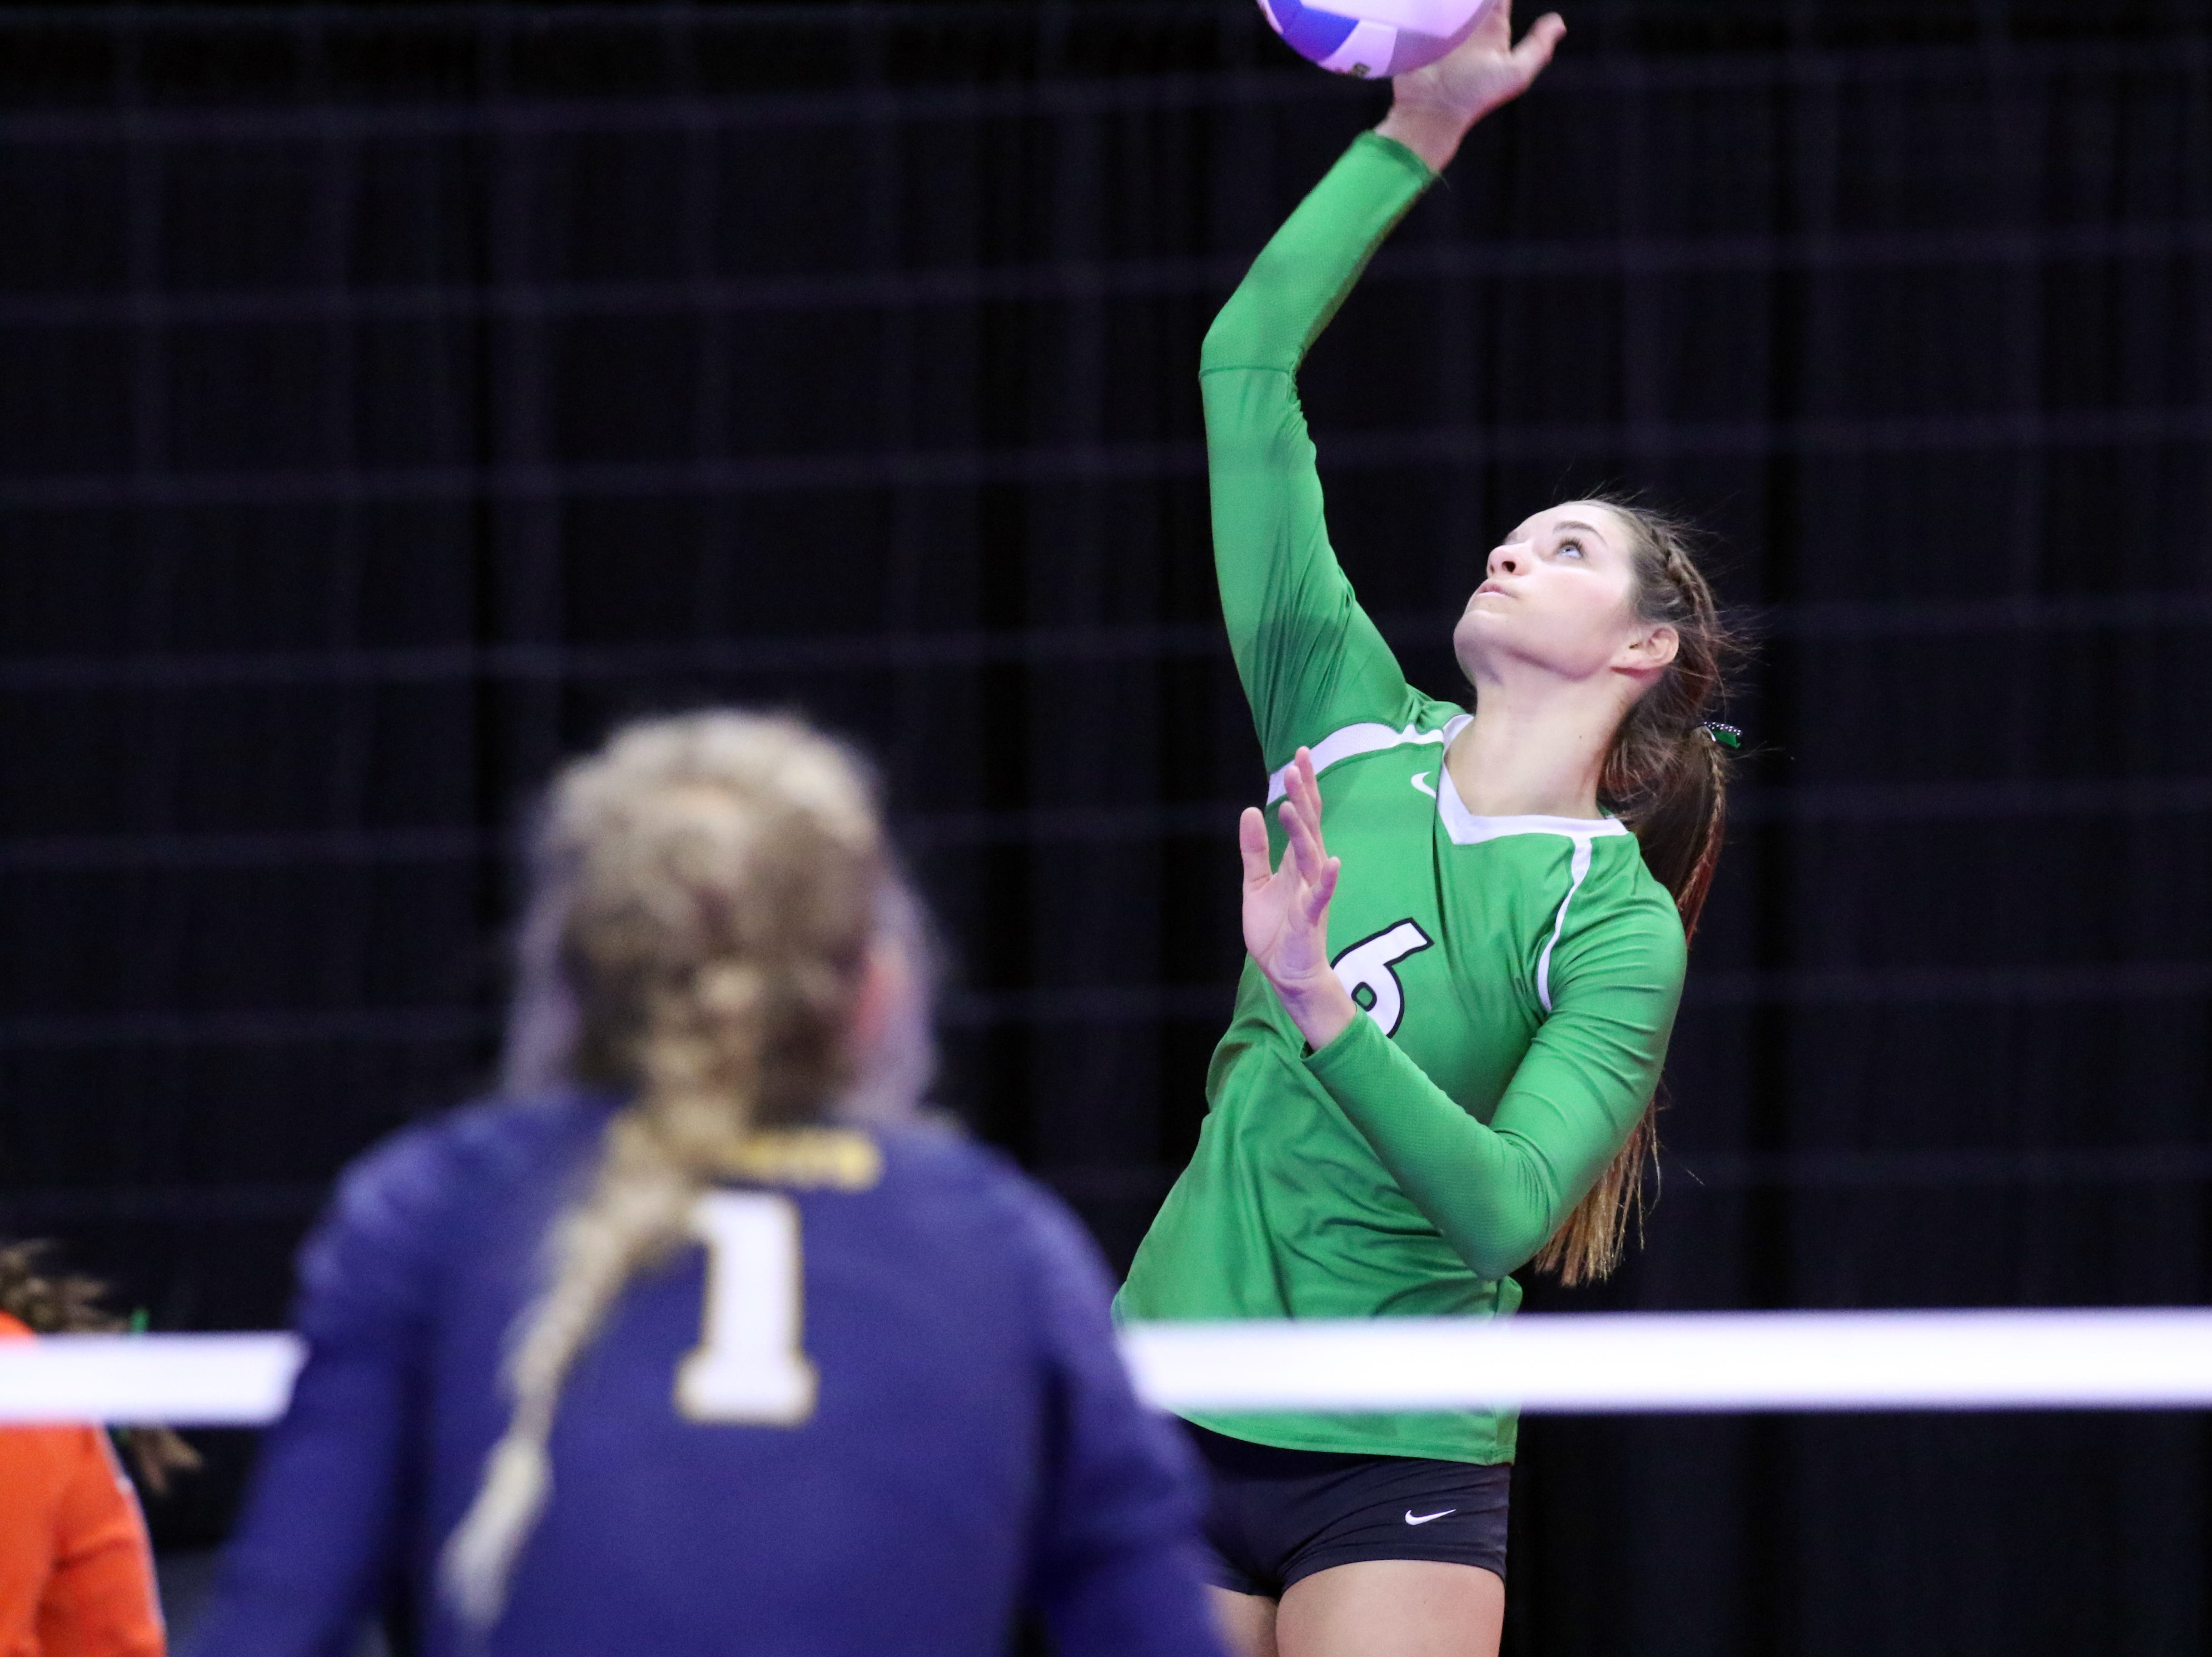 Kayde Fernholz of Miller serves the ball as Riley Freeland of Rapid City Christian looks on during Thursday afternoon's match in Sioux Falls.